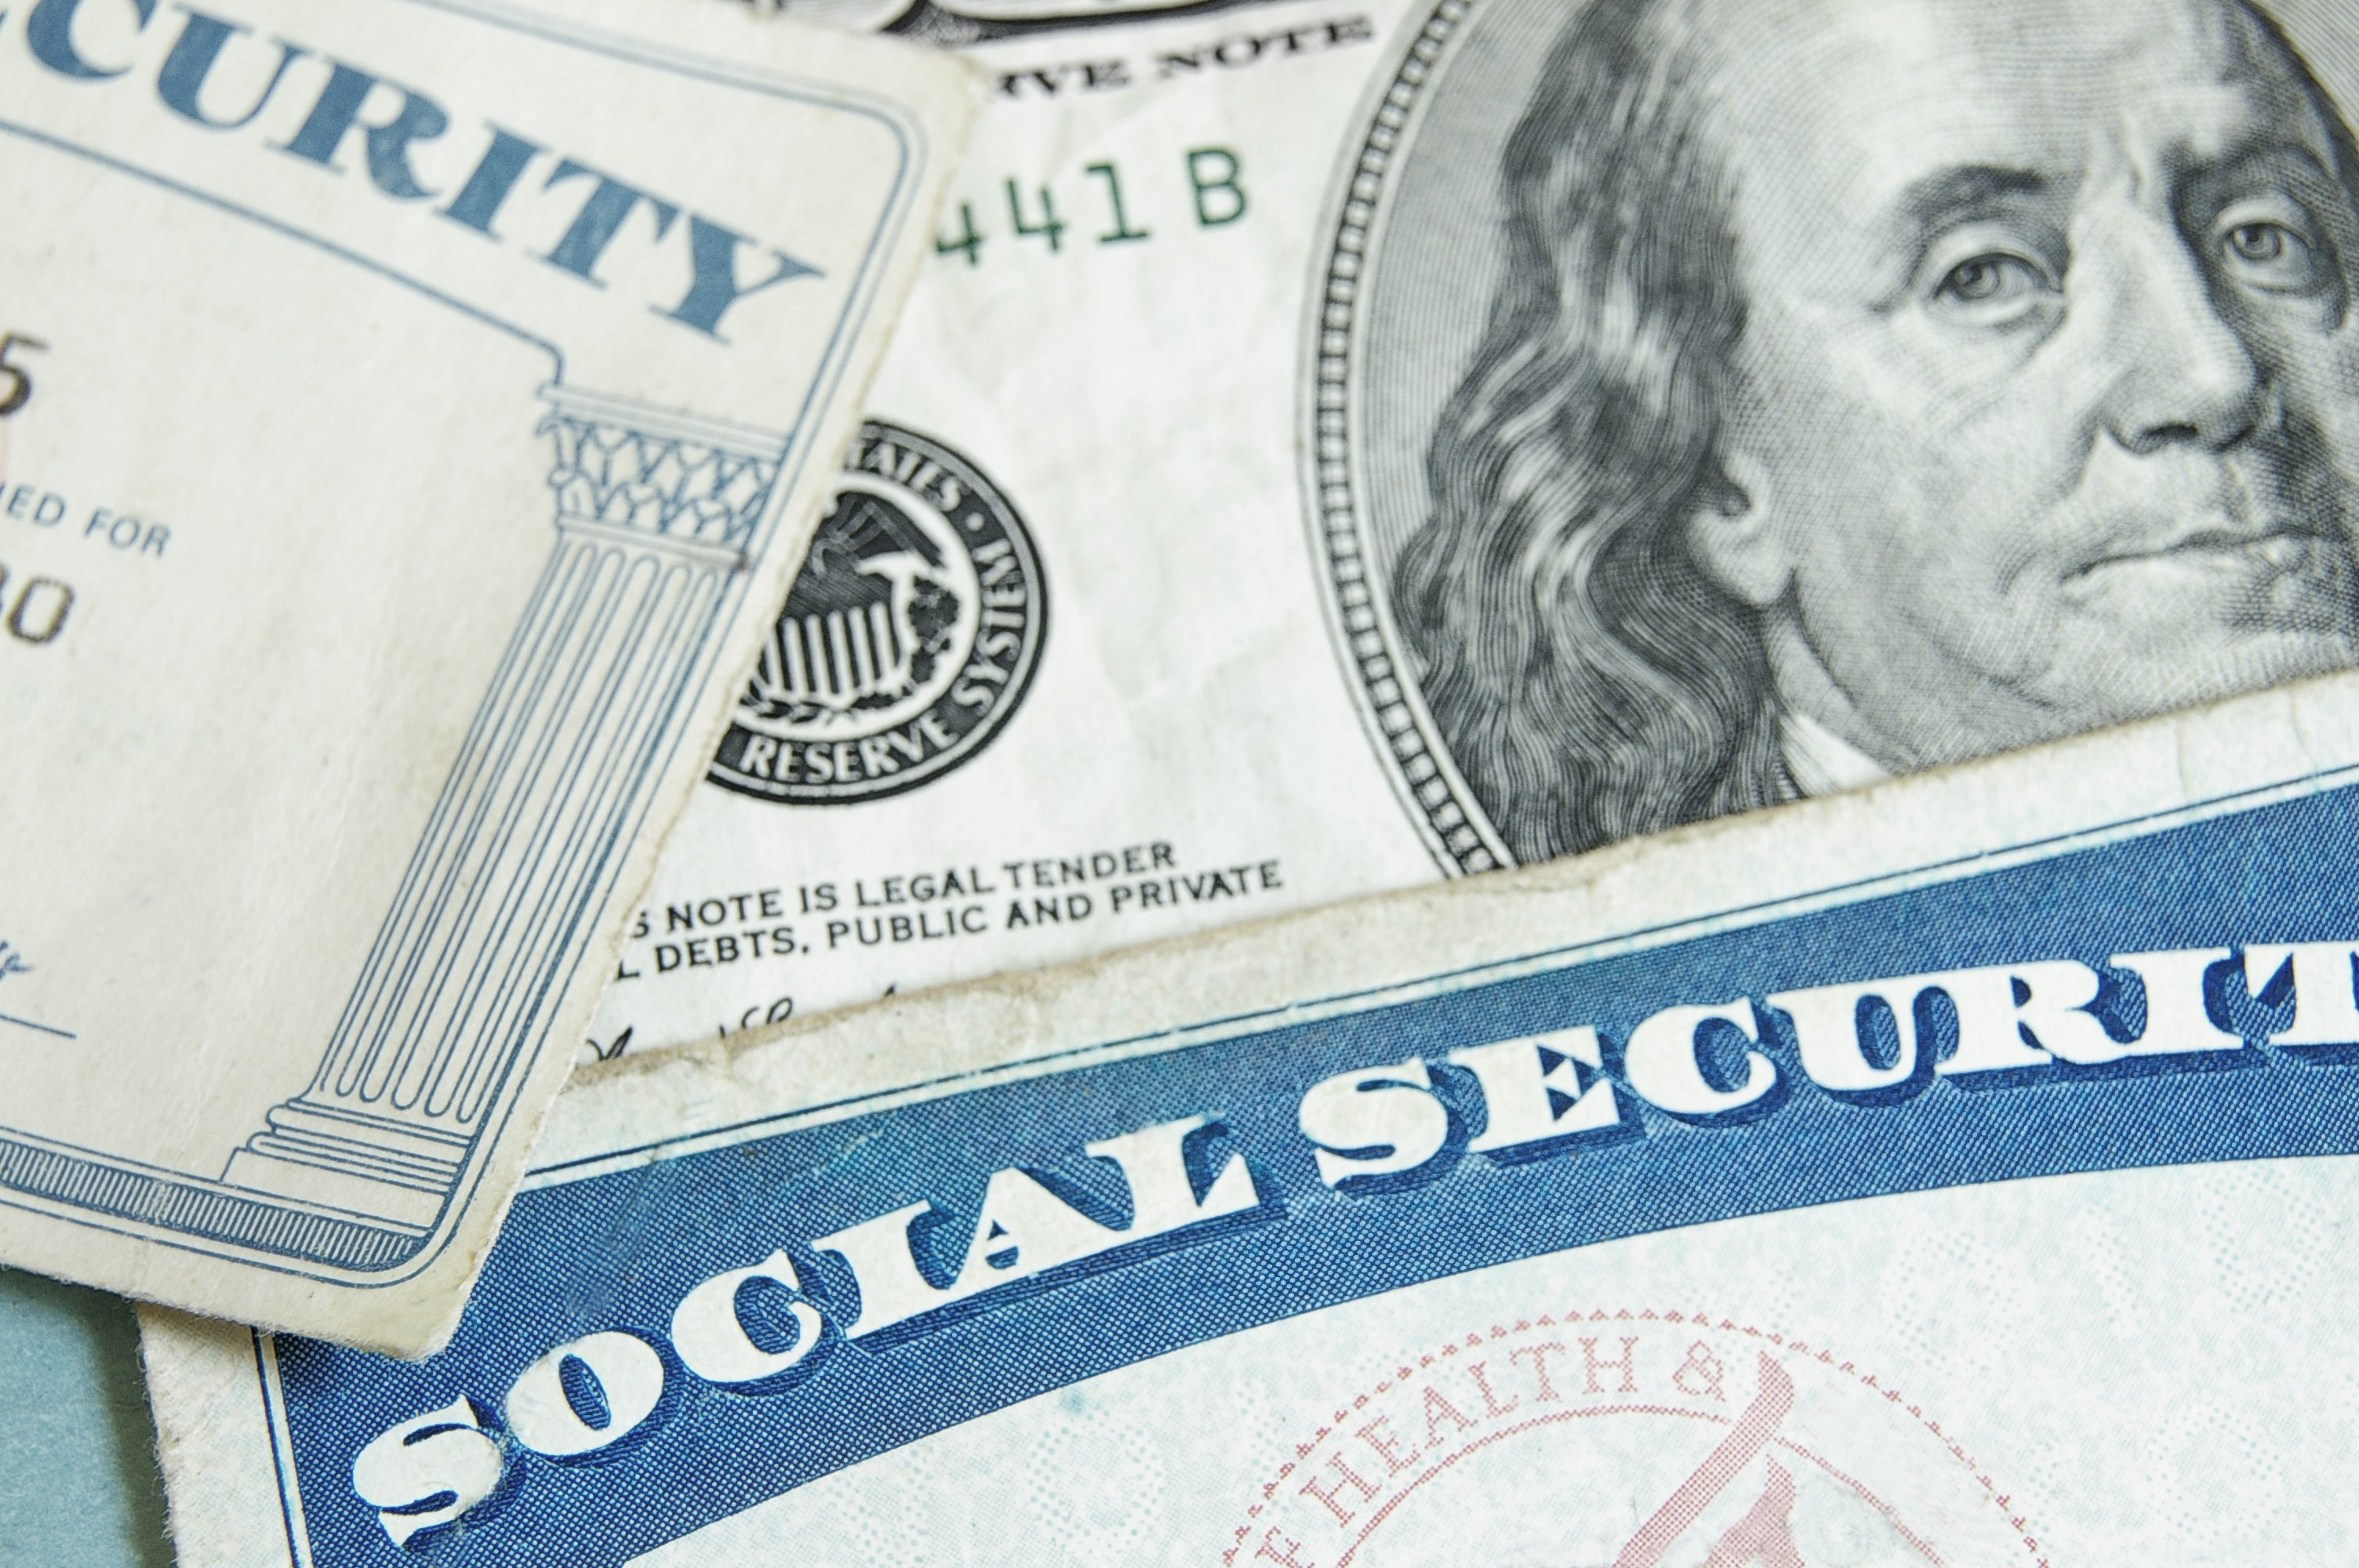 Social Security Forfeiture: What Are the 2018 Income Limits